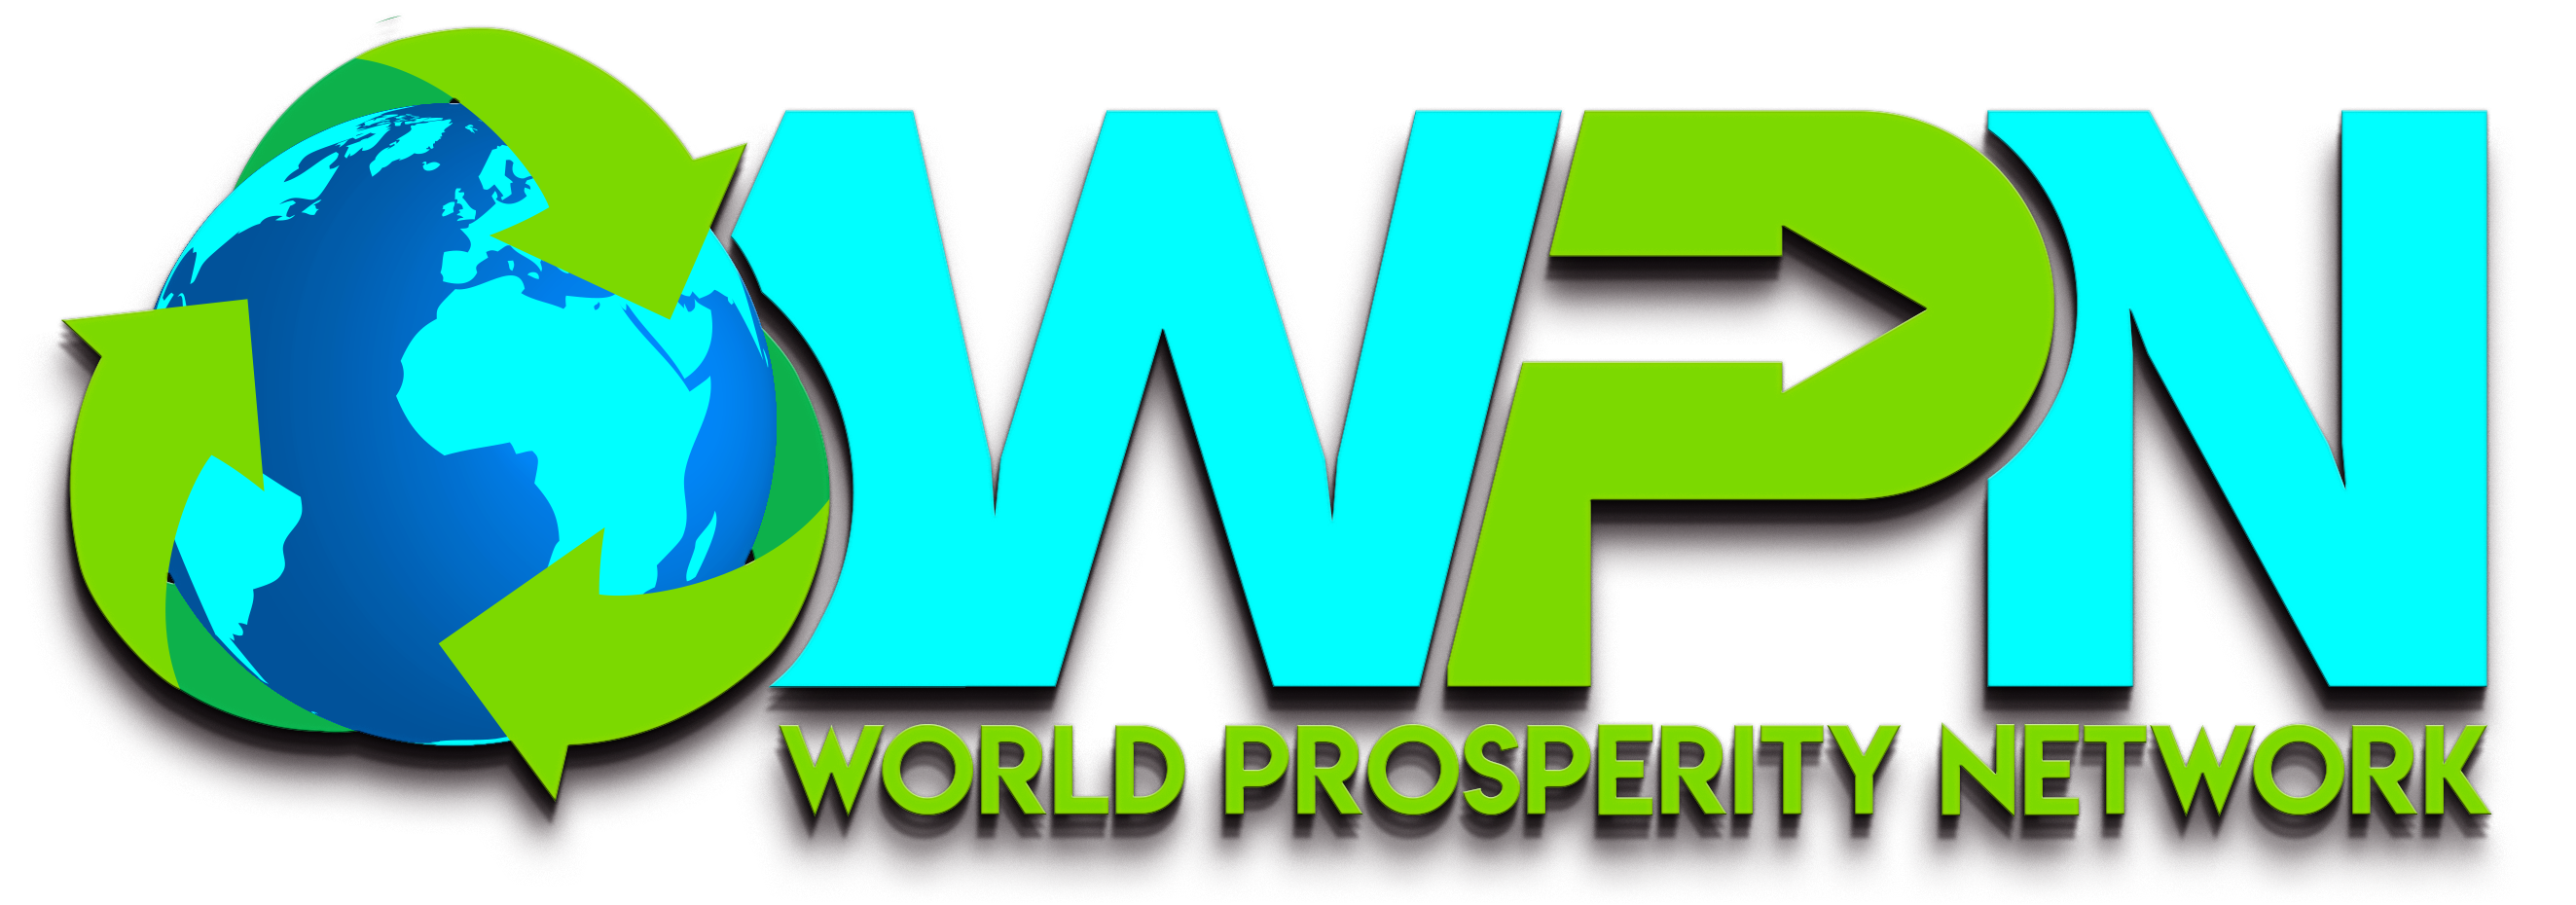 World Prosperity Network - Grow Your Wealth by Sharing